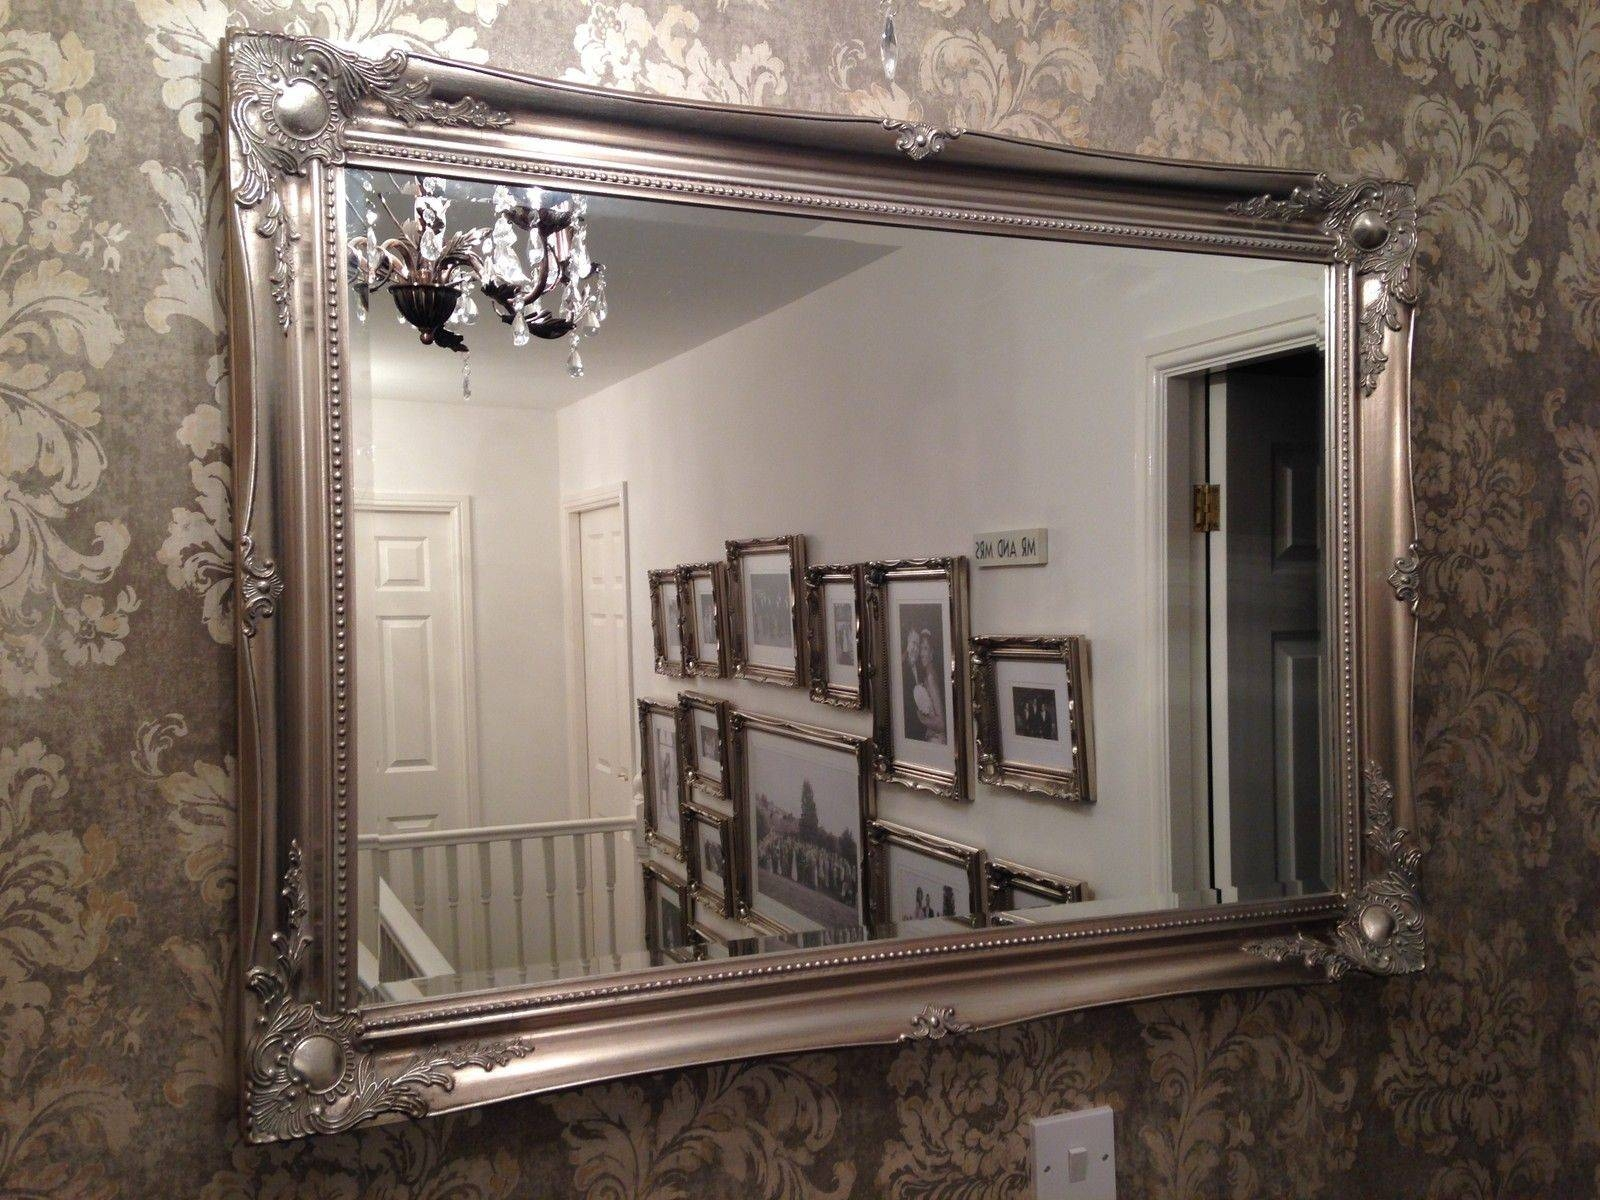 Large Antique Wall Mirror Ornate Frame Antique Ornate Wall Mirrors with Ornate Full Length Wall Mirrors (Image 17 of 25)